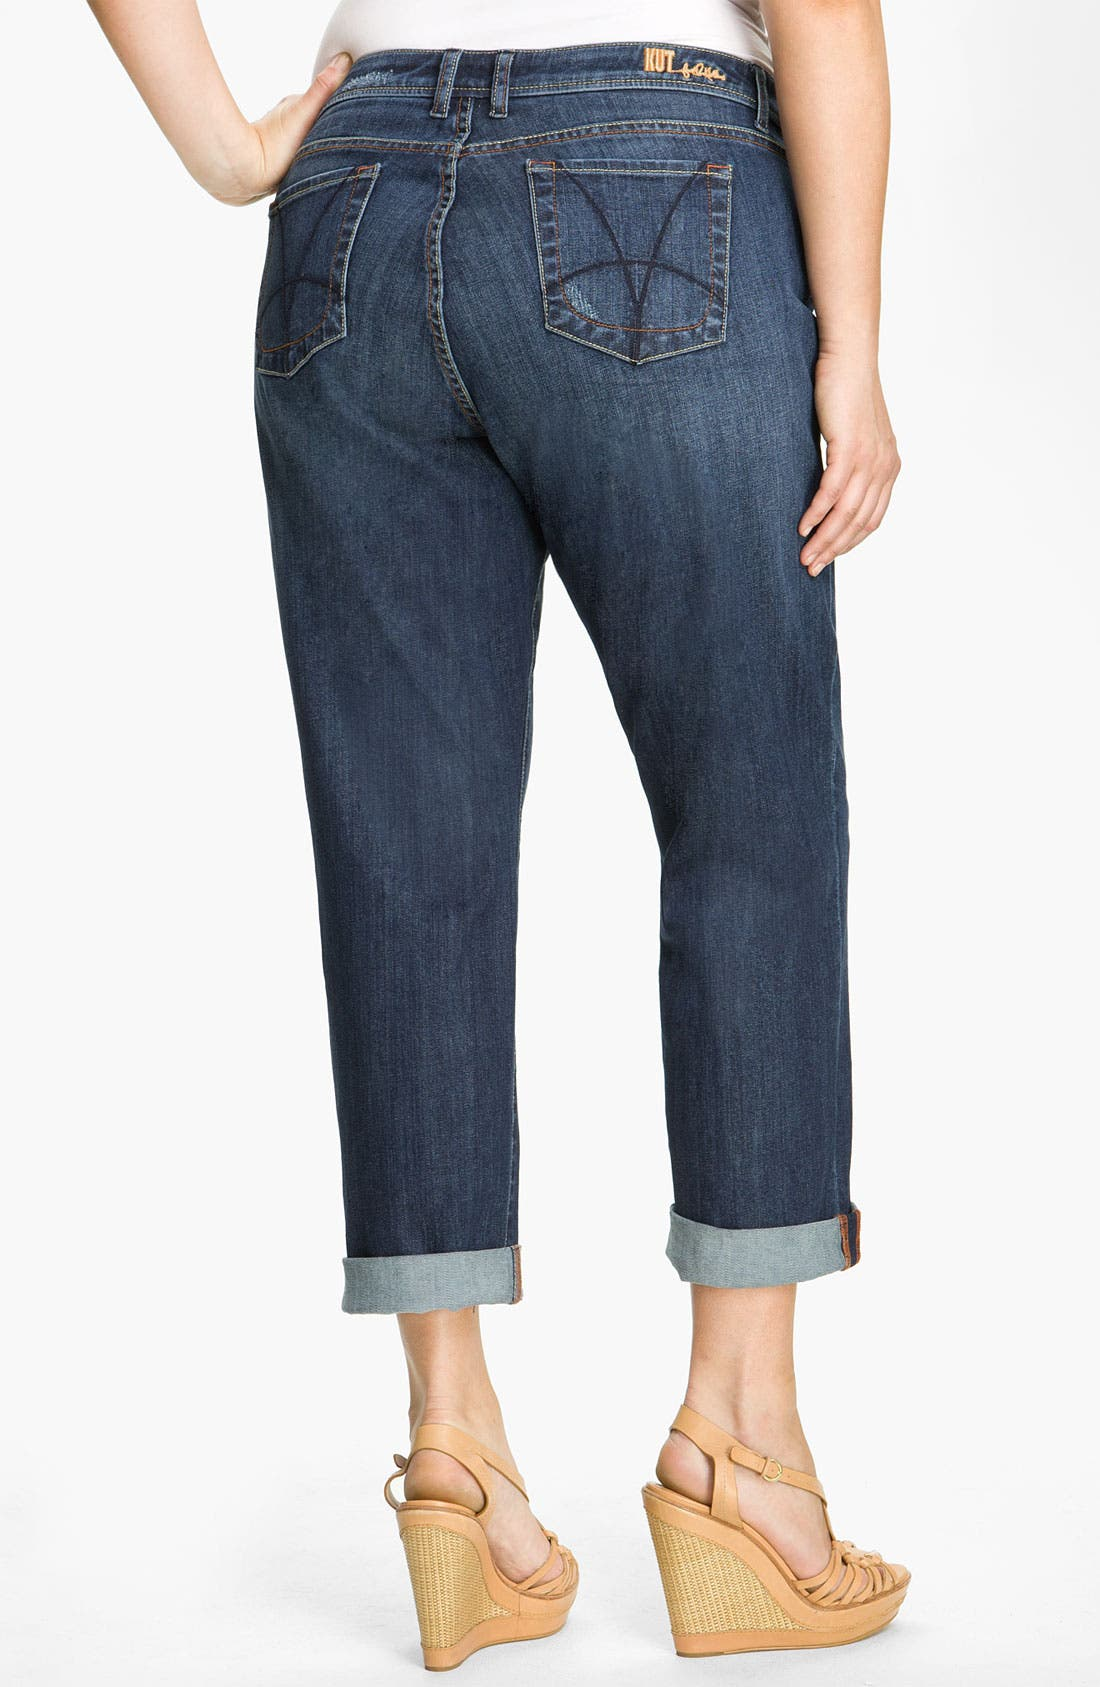 Alternate Image 1 Selected - KUT from the Kloth Slim Boyfriend Jeans (Plus)